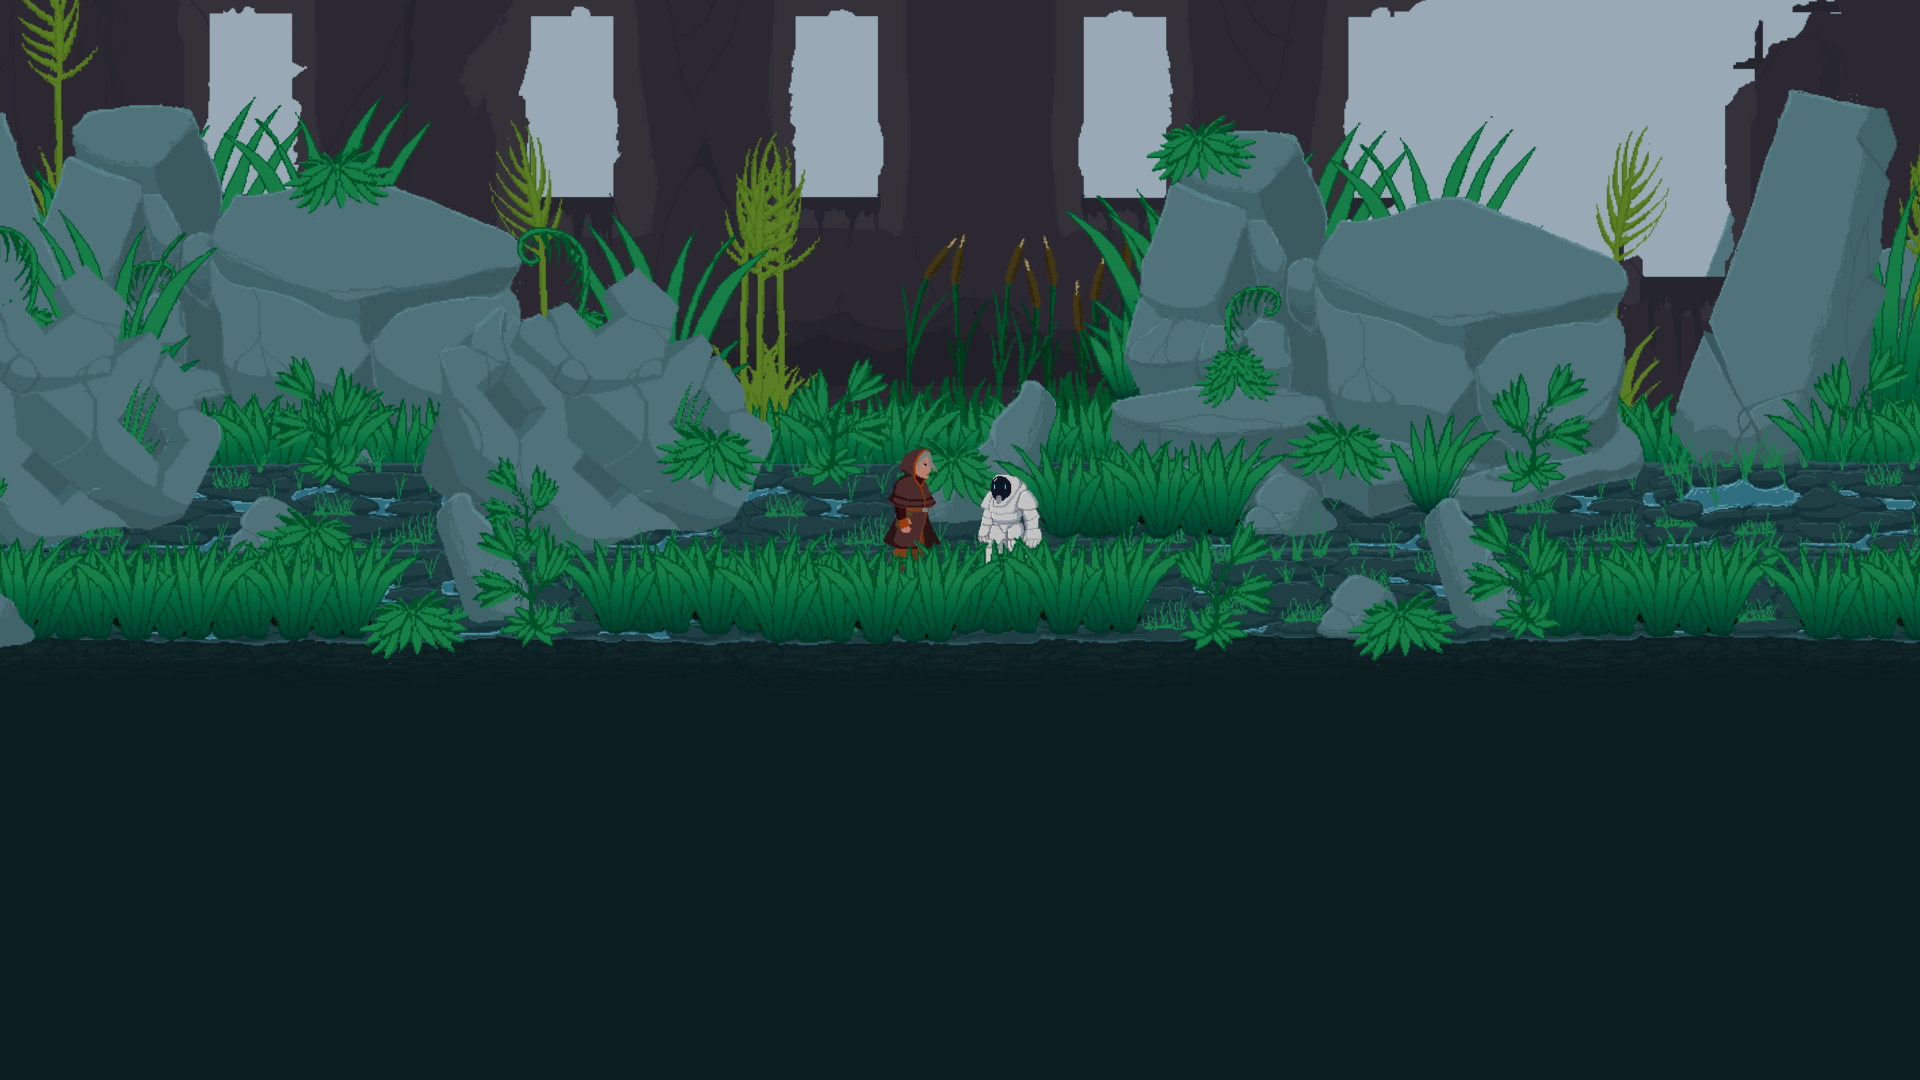 Terra Nova - Artist: Maize Longboat (Kanien'kehá:ka), Ray Caplin (Mi'gmaq)Canada   2019   GameAll AgesSet on Earth in the far distant future, this 2-player cooperative platformer explores what first contact between Indigenous and Settler peoples might look like thousands of years from now. Two worlds collide after a mysterious spacecraft crashlands in Earthborn territory. Follow Terra, an Elder Earthborn landkeeper, and Nova, a youthful Starborn inventor as they explore their respective environments and interact with the people of their communities.Maize Longboat is Kanien'kehá:ka (Mohawk) from Six Nations of the Grand River and was raised on the traditional, ancestral, and unceded territory of the Coast Salish peoples near Vancouver, BC. He has an MA in Media Studies from Concordia University in Montreal, QC. His research-creation thesis project examined Indigenous videogames and culturally-connected development practices through the production of his own game, Terra Nova, a two-player, cooperative platformer with an interactive narrative. Currently, Maize is the Skins Workshops Associate Director with Aboriginal Territories in Cyberspace (AbTeC) and the Initiative for Indigenous Futures (IIF).